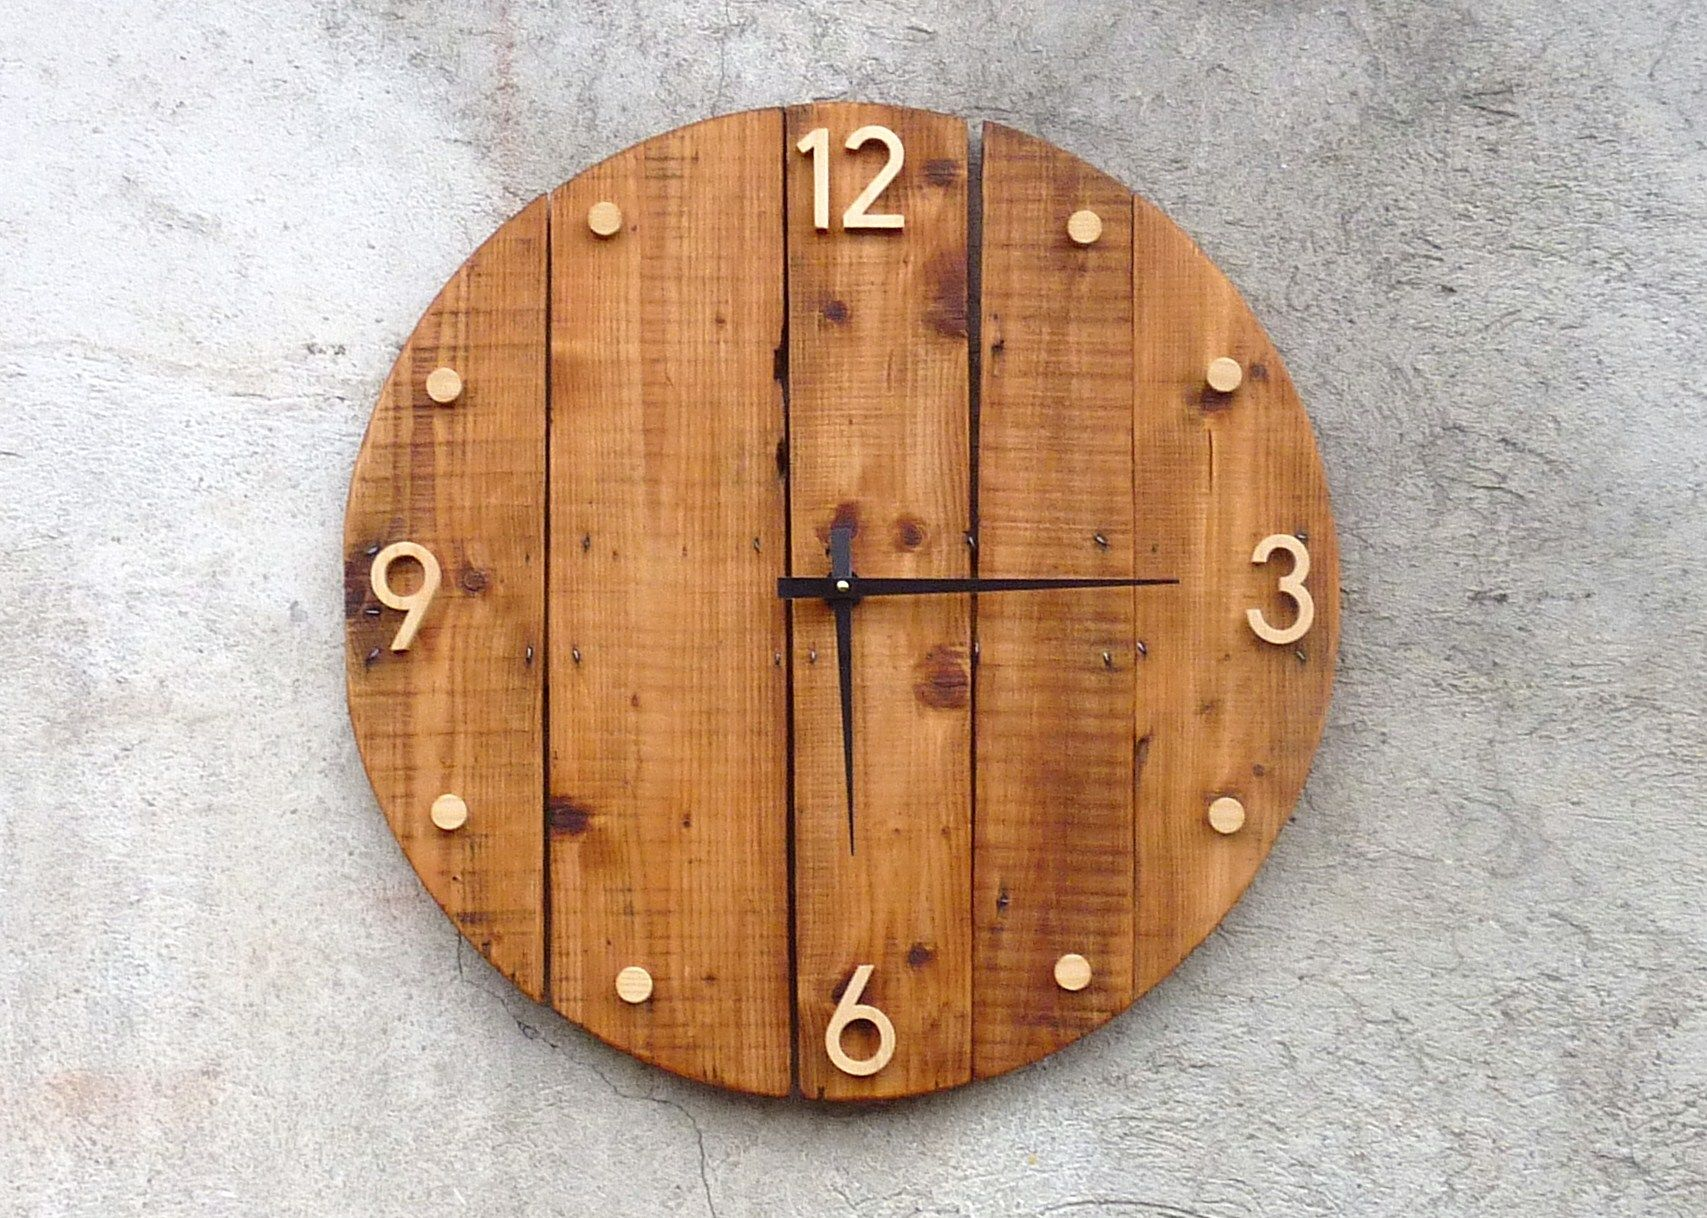 horloge murale en bois style rustique et industriel i wood clocks i pinterest bois. Black Bedroom Furniture Sets. Home Design Ideas